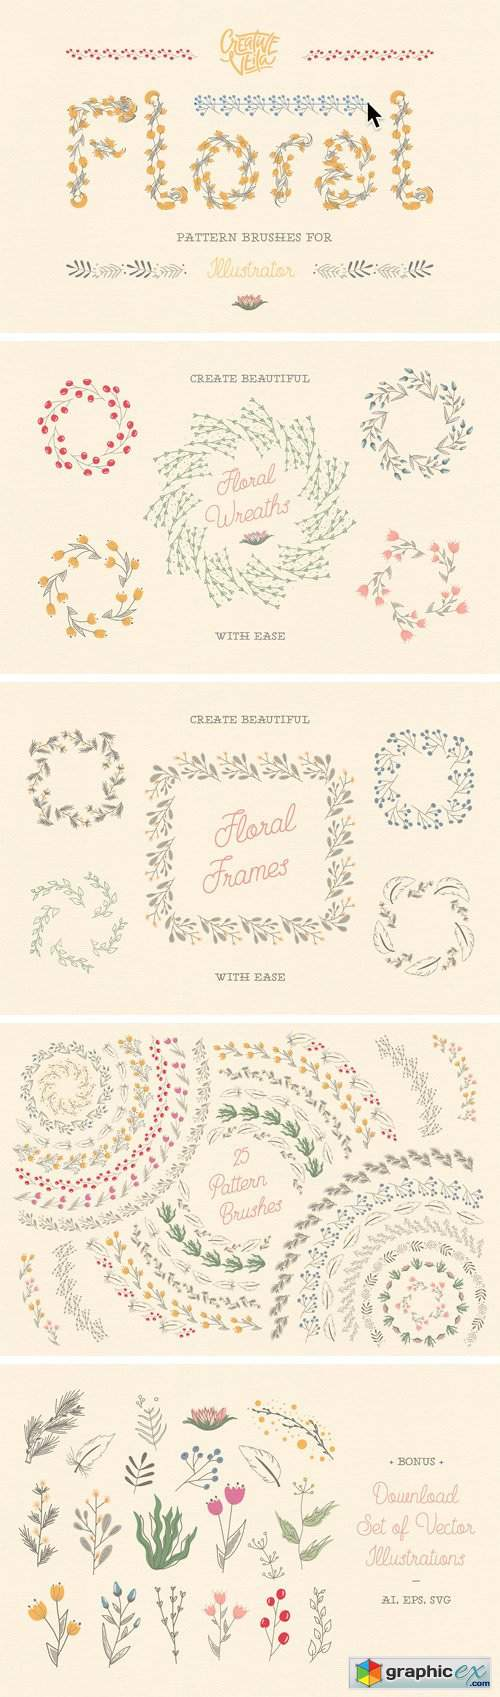 Floral Pattern Brushes For Ai